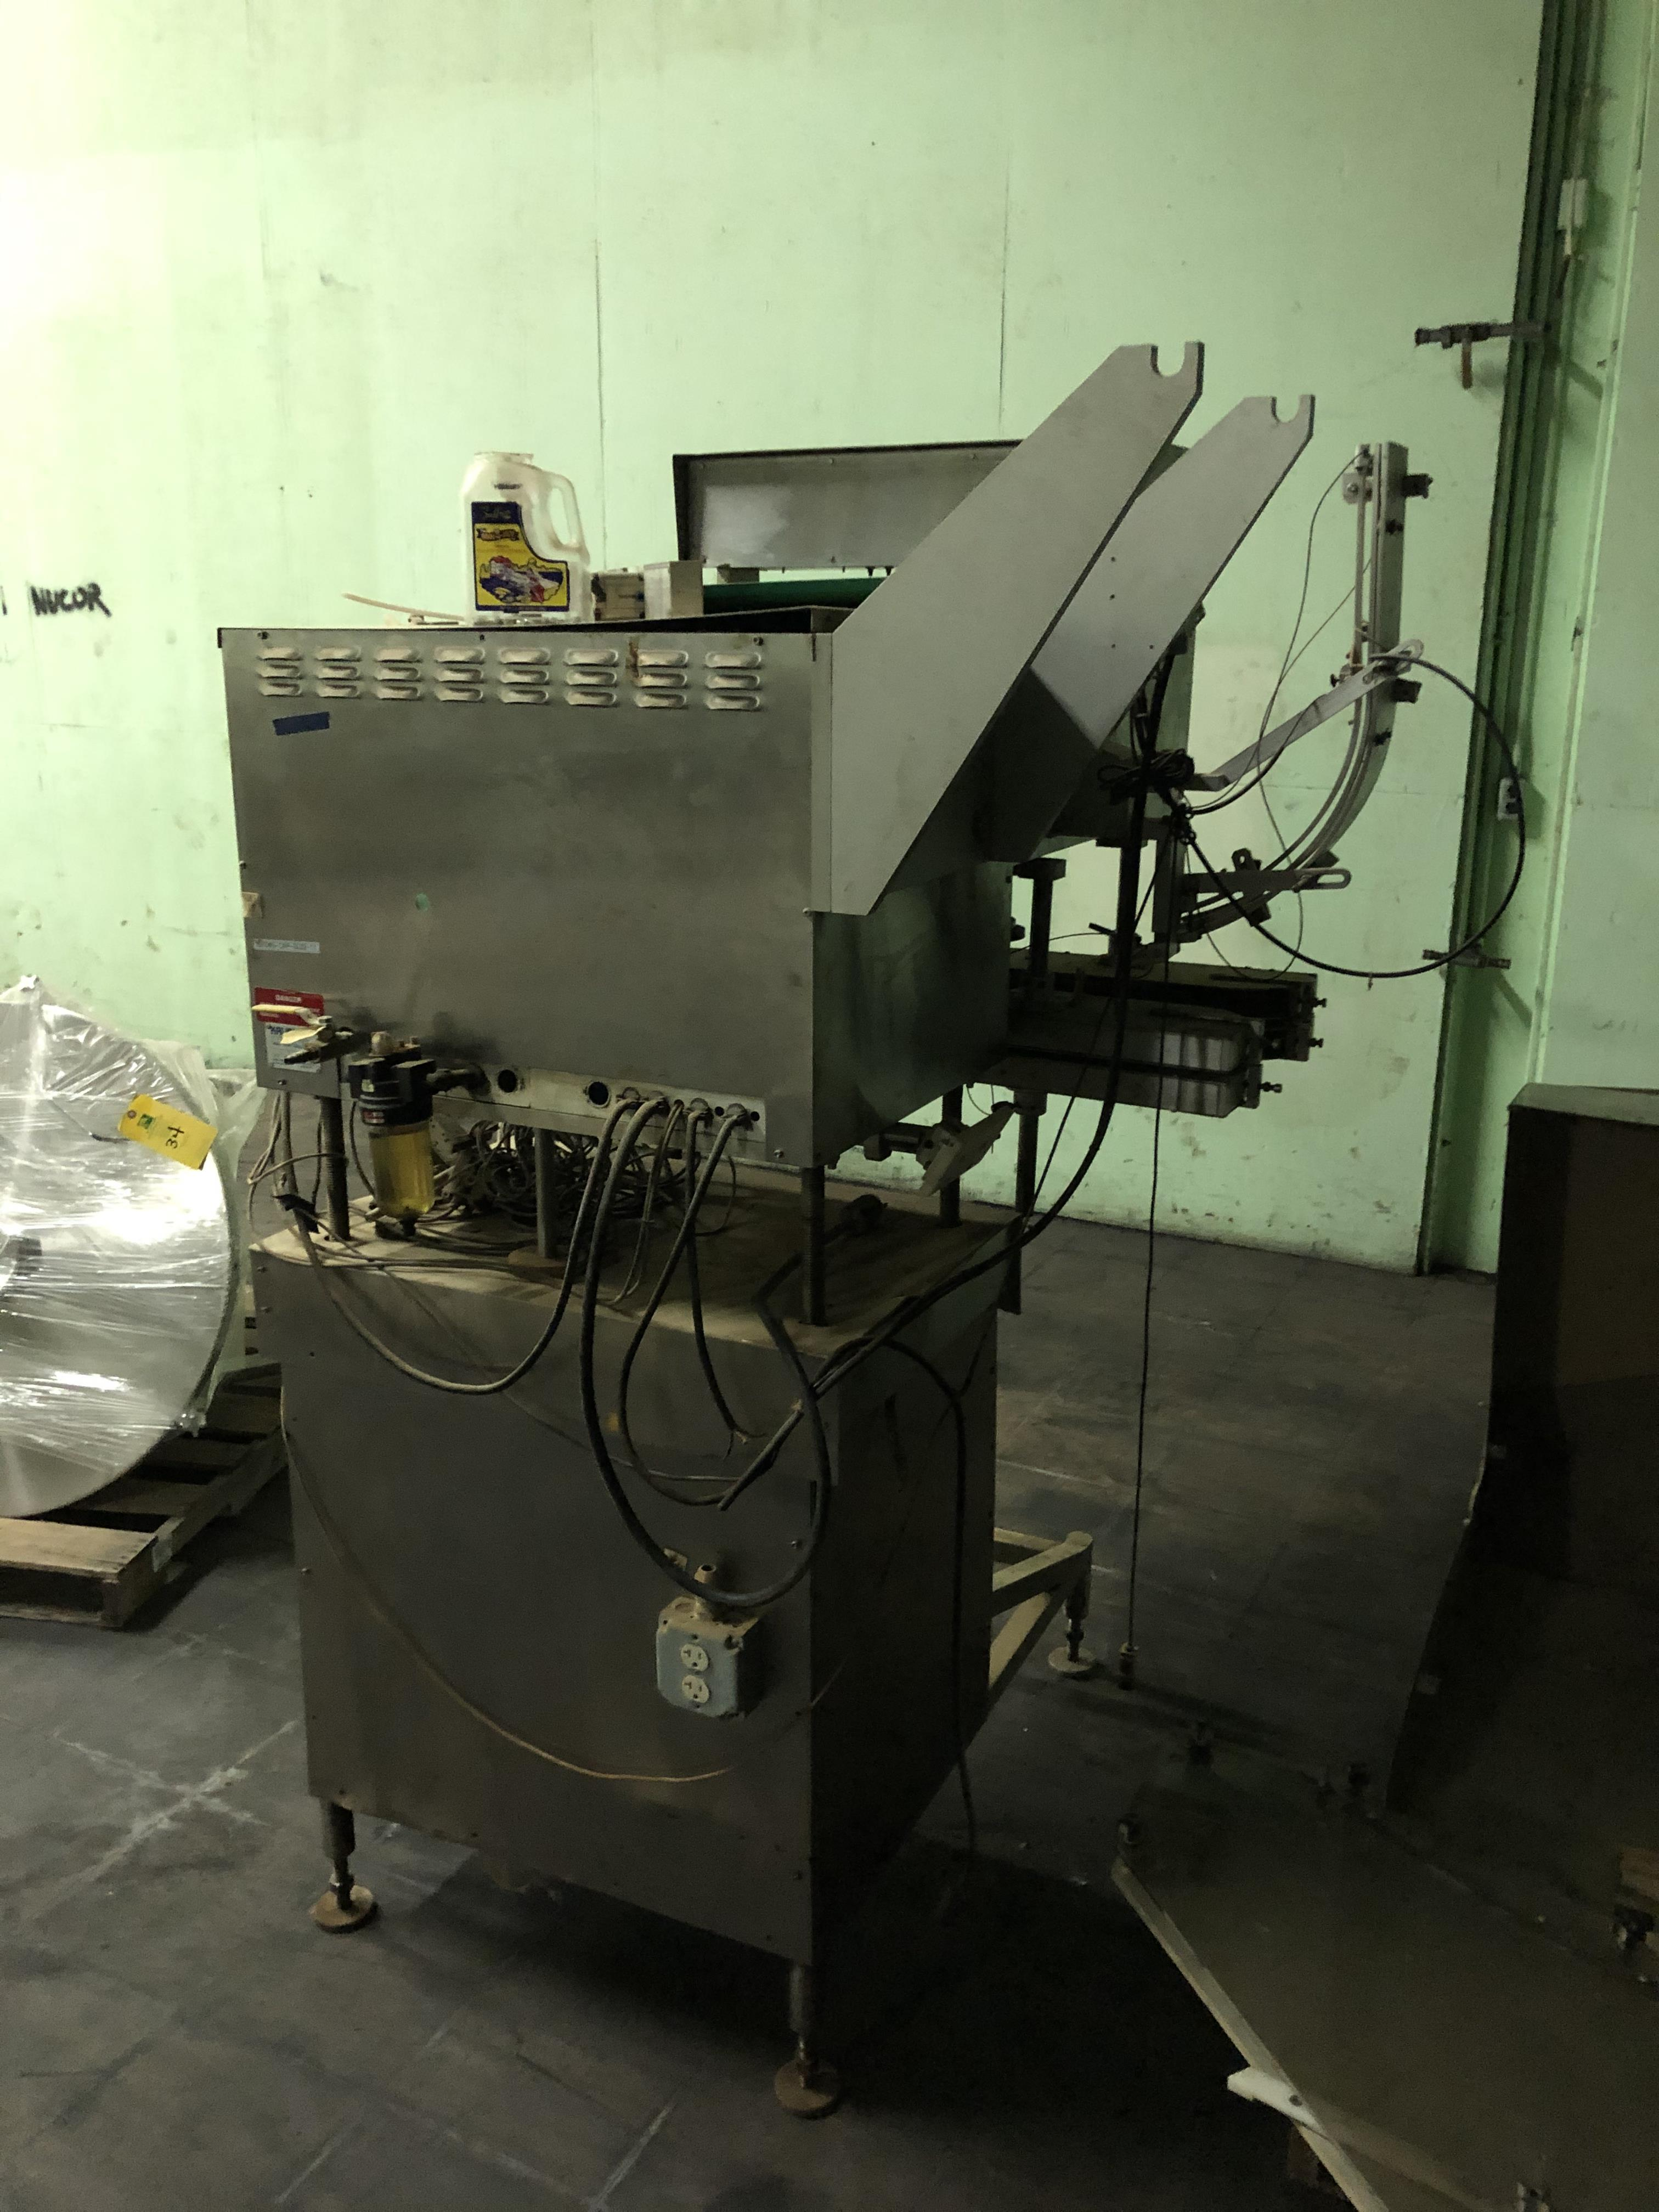 Kalish Model #5010 Supercap Capper, SN 0310, Includes Conveyor Feed, RIGGING FEE $450 - Image 4 of 6